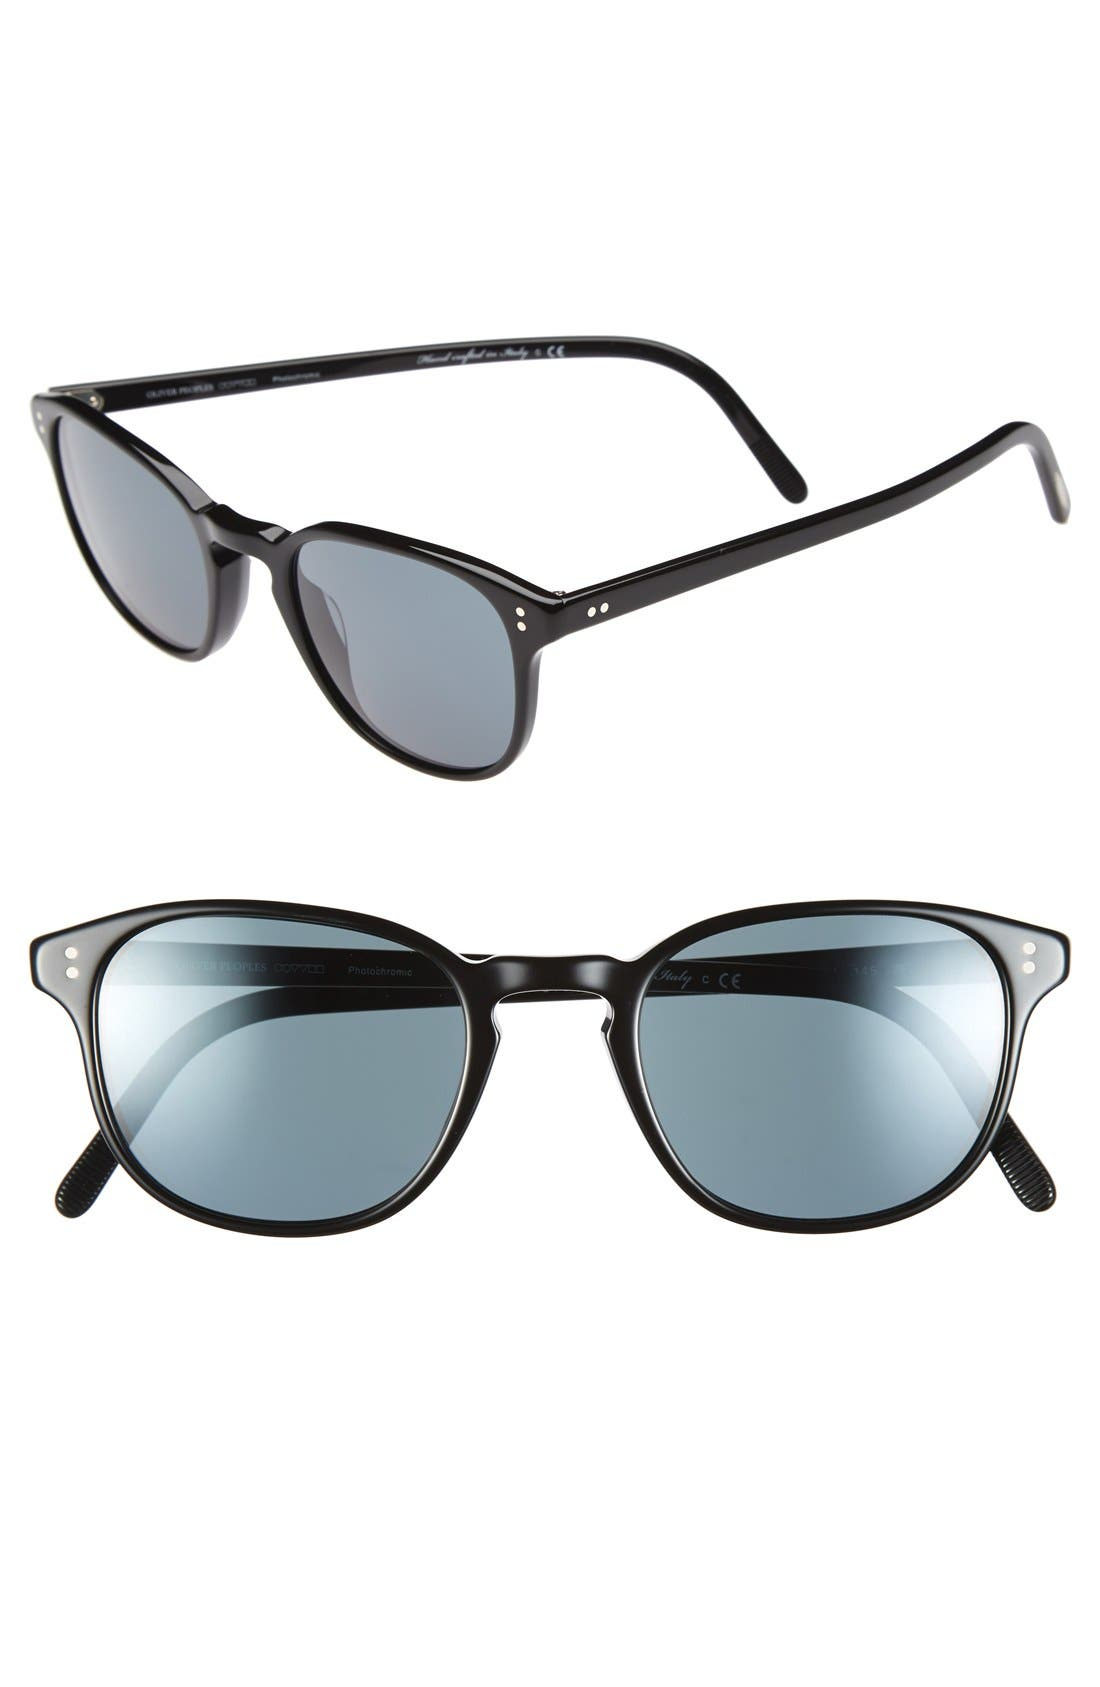 Main Image - Oliver Peoples 'Fairmont' 49mm Sunglasses